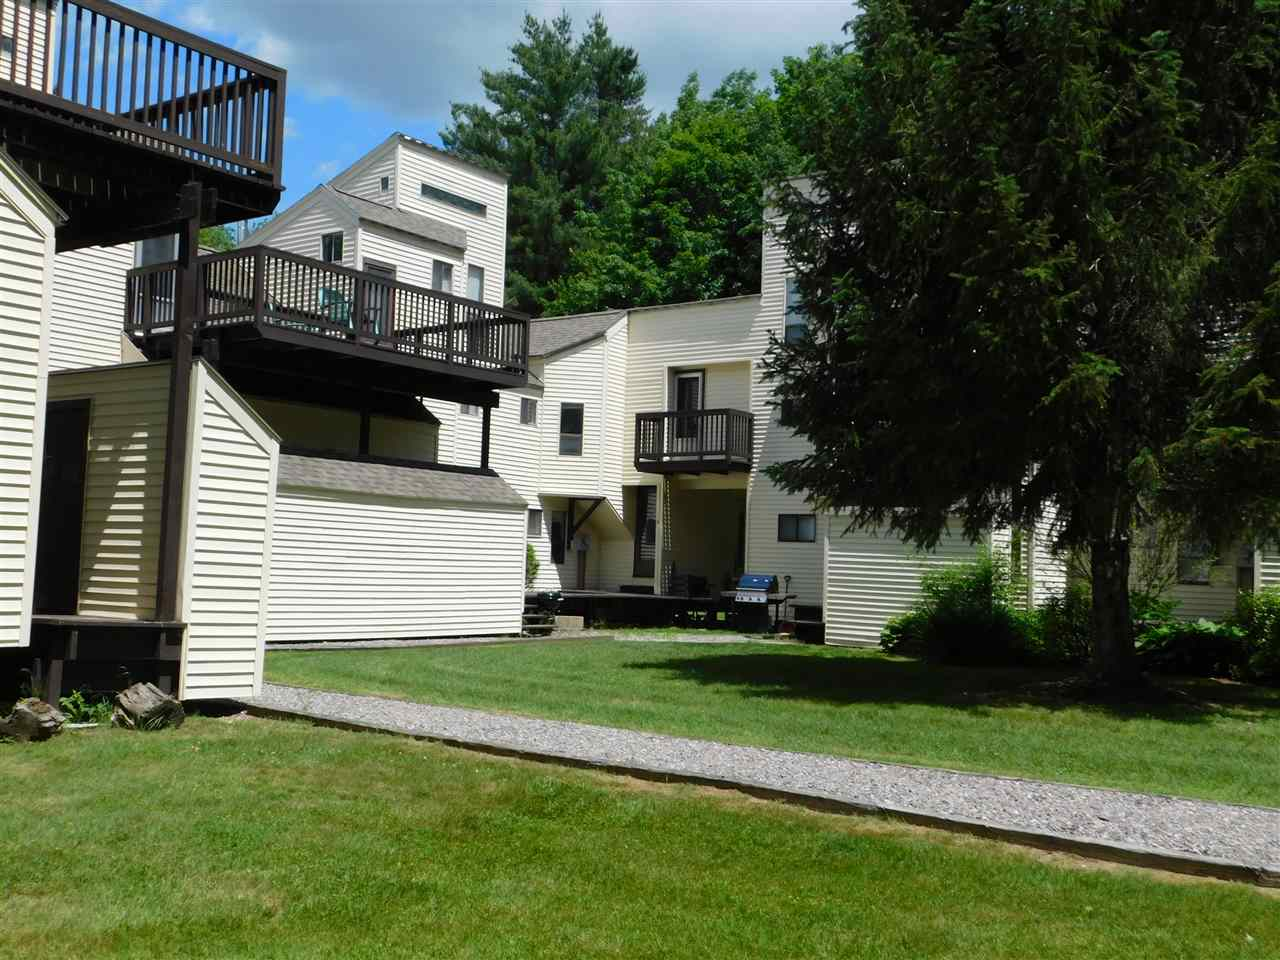 71 Waterville Acres 5, Thornton, NH 03285